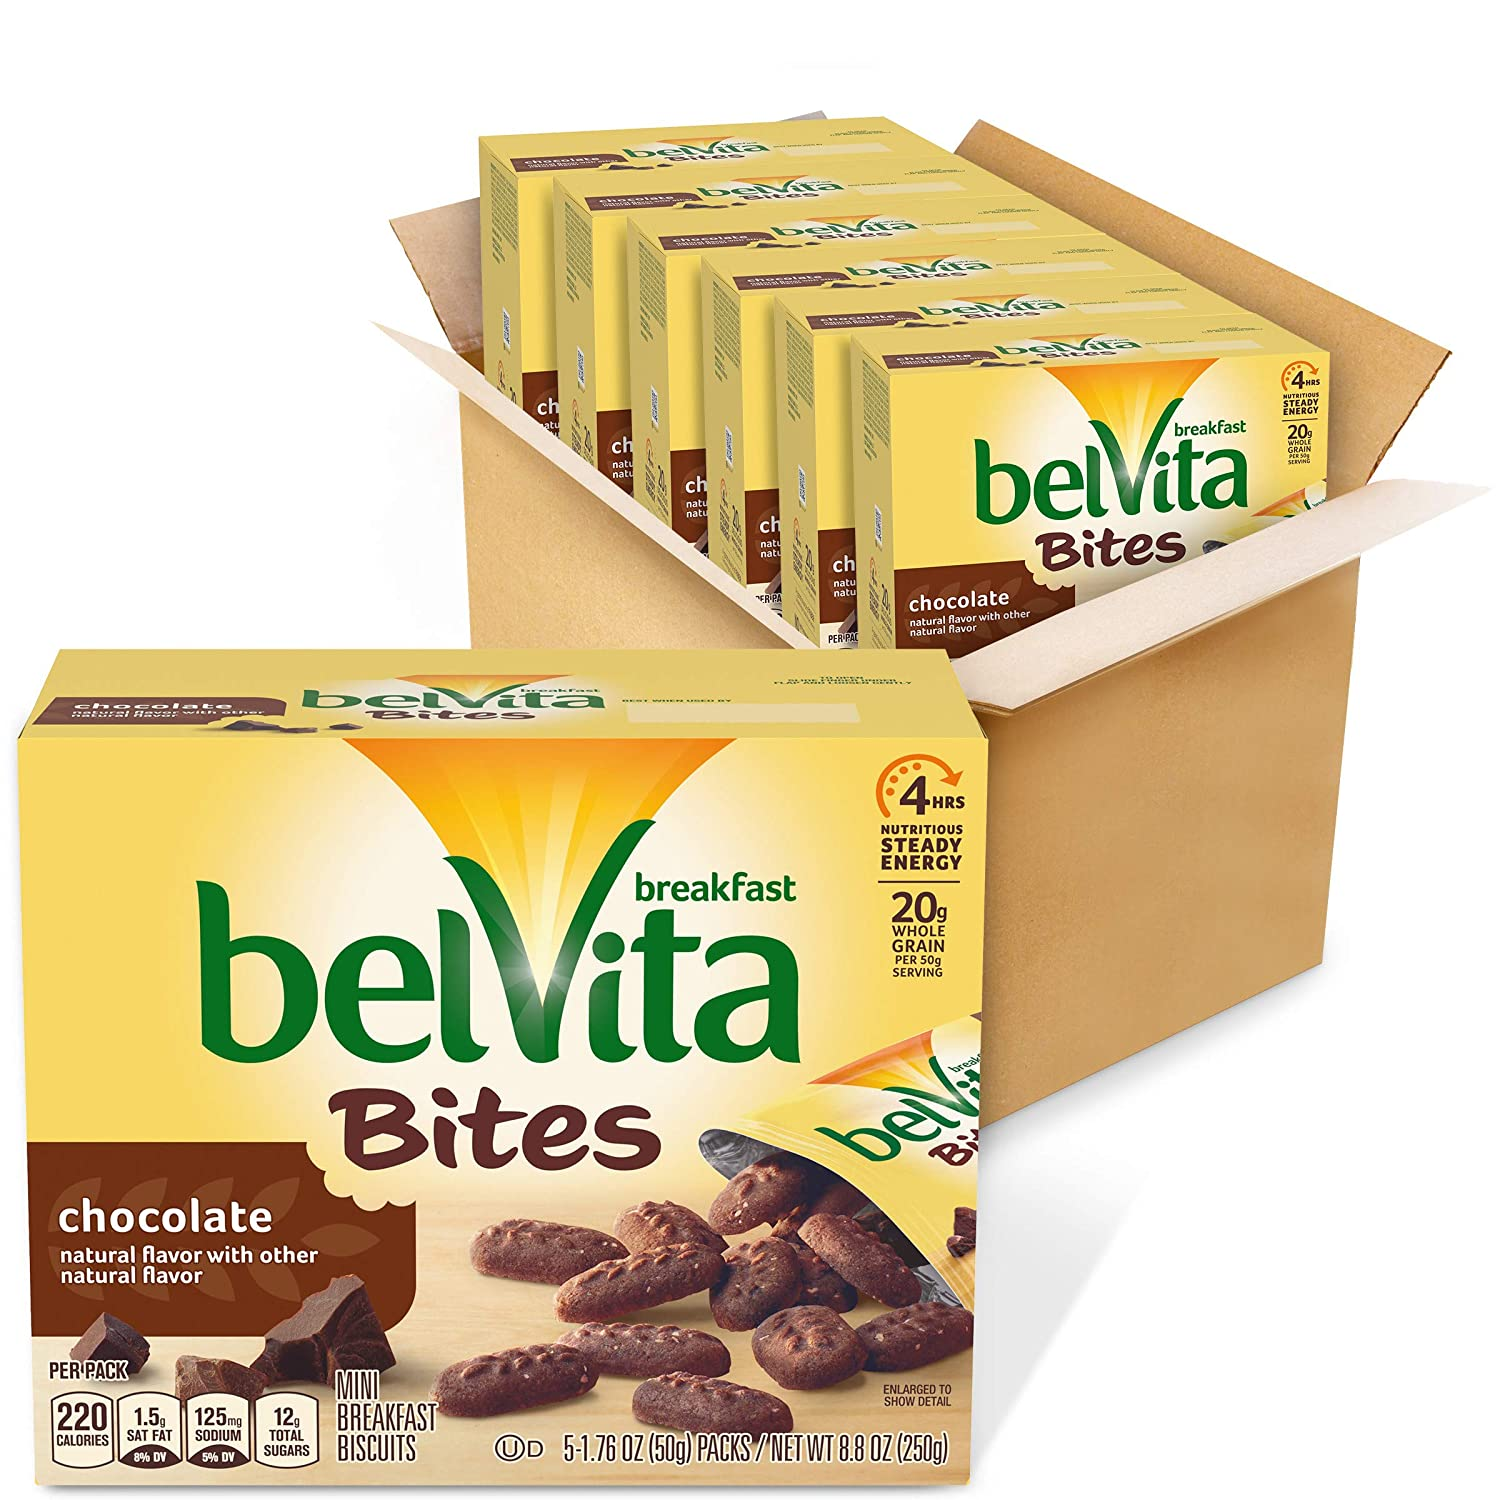 6-Pack 5-Count belVita Mini Breakfast Biscuits Bites (Chocolate) $7.86 w/ S&S + Free Shipping w/ Prime or on $25+